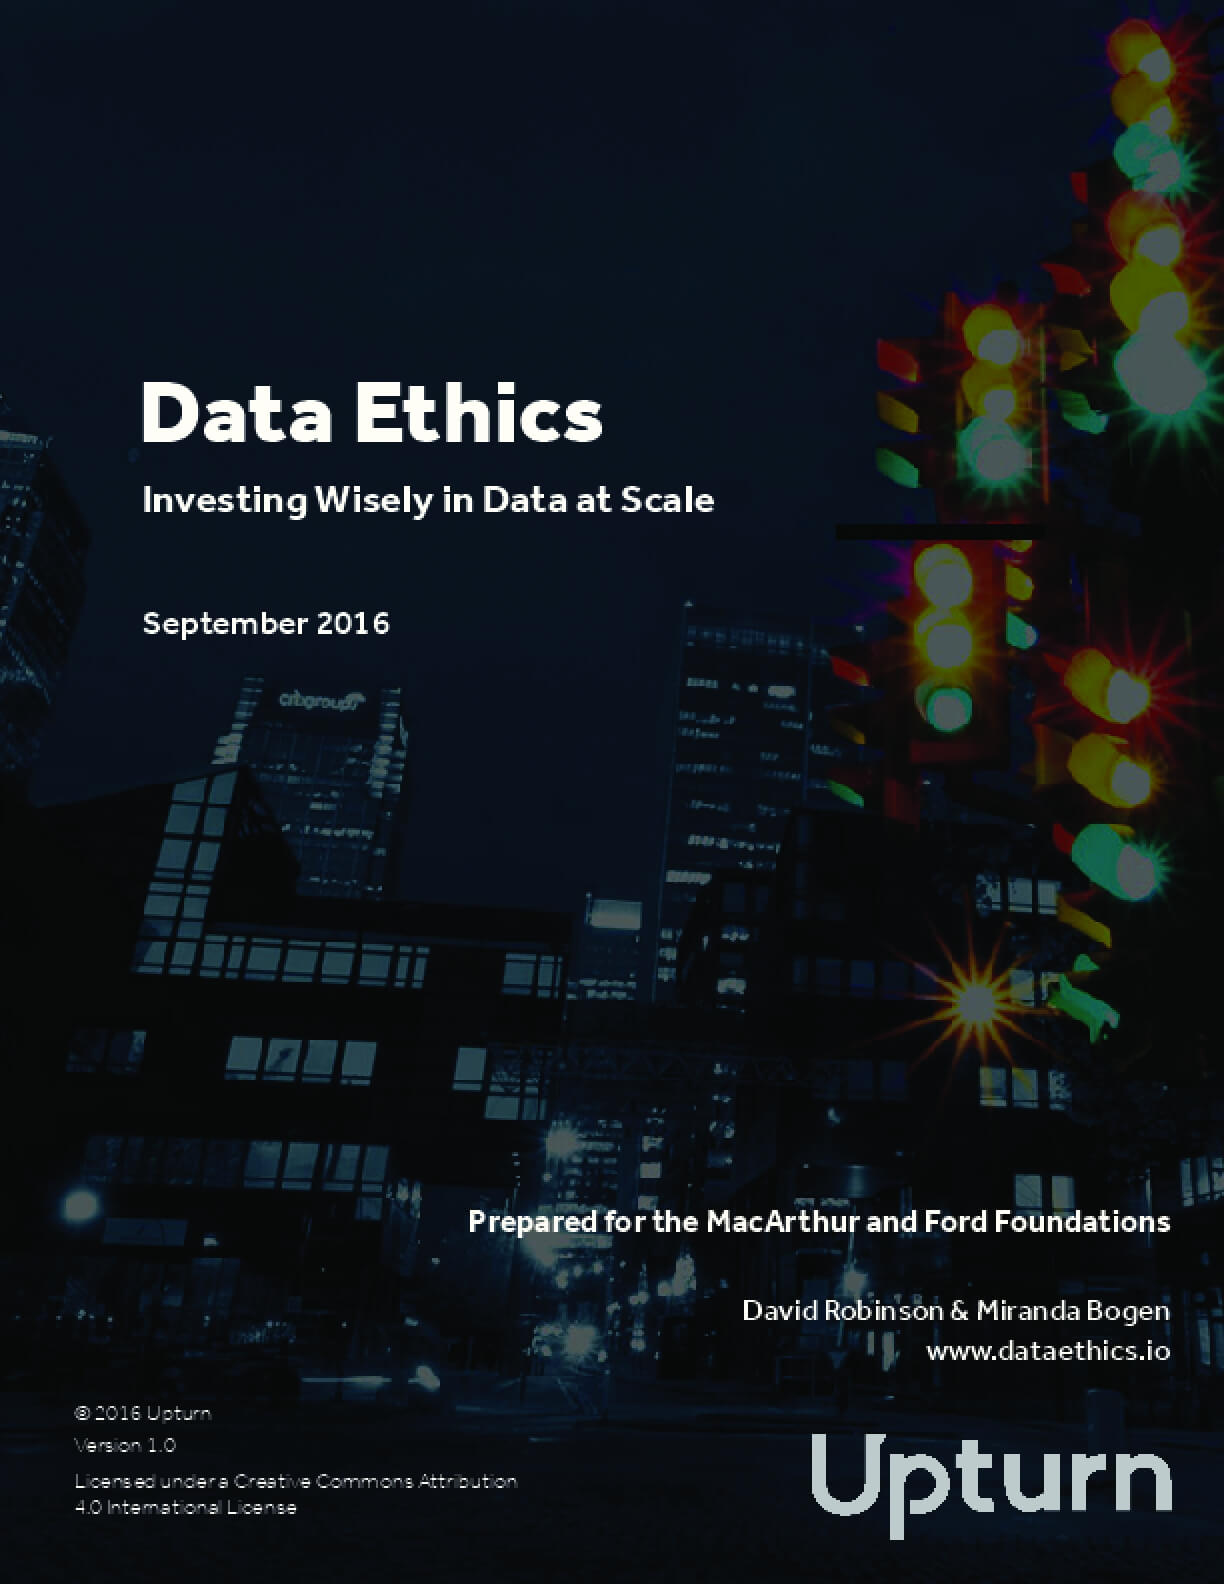 Data Ethics: Investing Wisely in Data at Scale